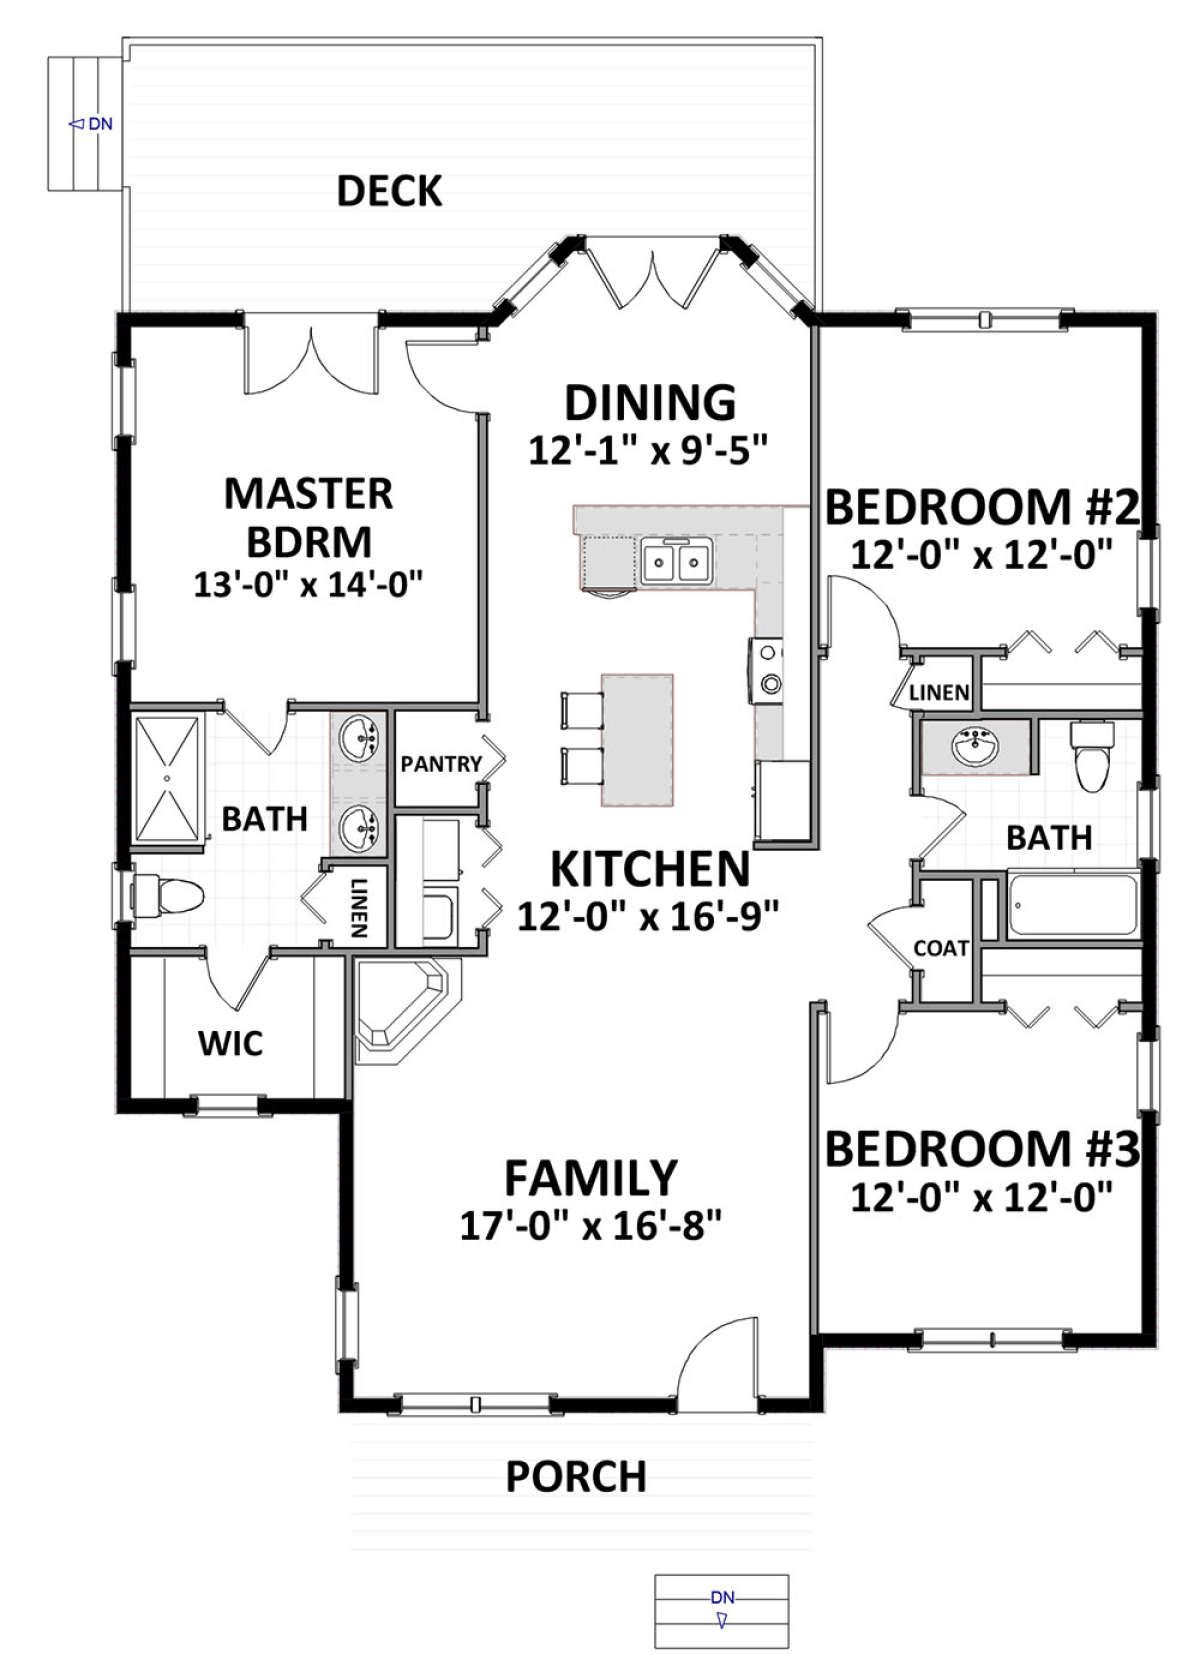 House Plan 6849 00051 Cottage Plan 1 490 Square Feet 3 Bedrooms 2 Bathrooms In 2020 Cottage Plan House Plans Two Story House Plans